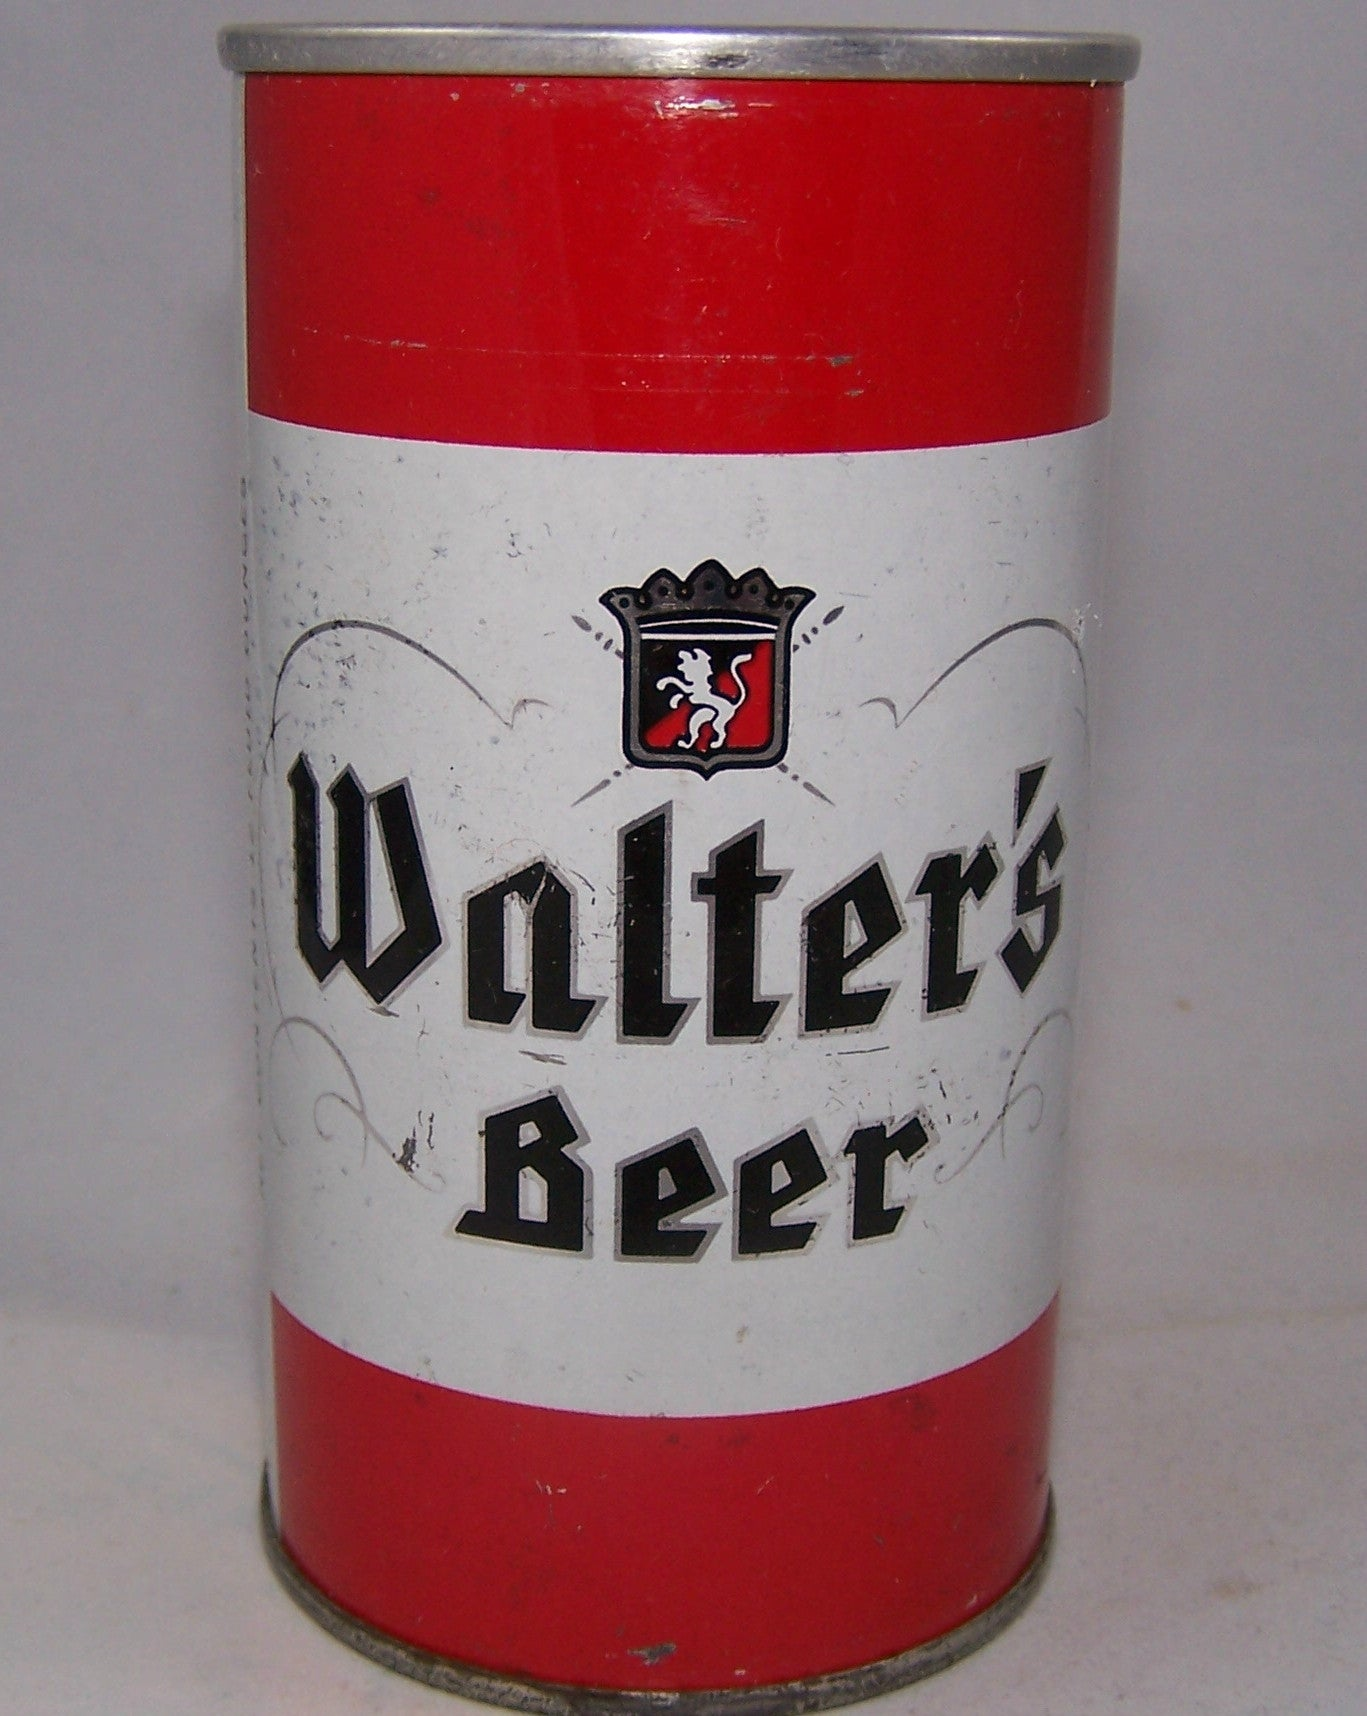 Walter's Beer USBC II 133-33, Grade 1/1- Sold on 08/12/16